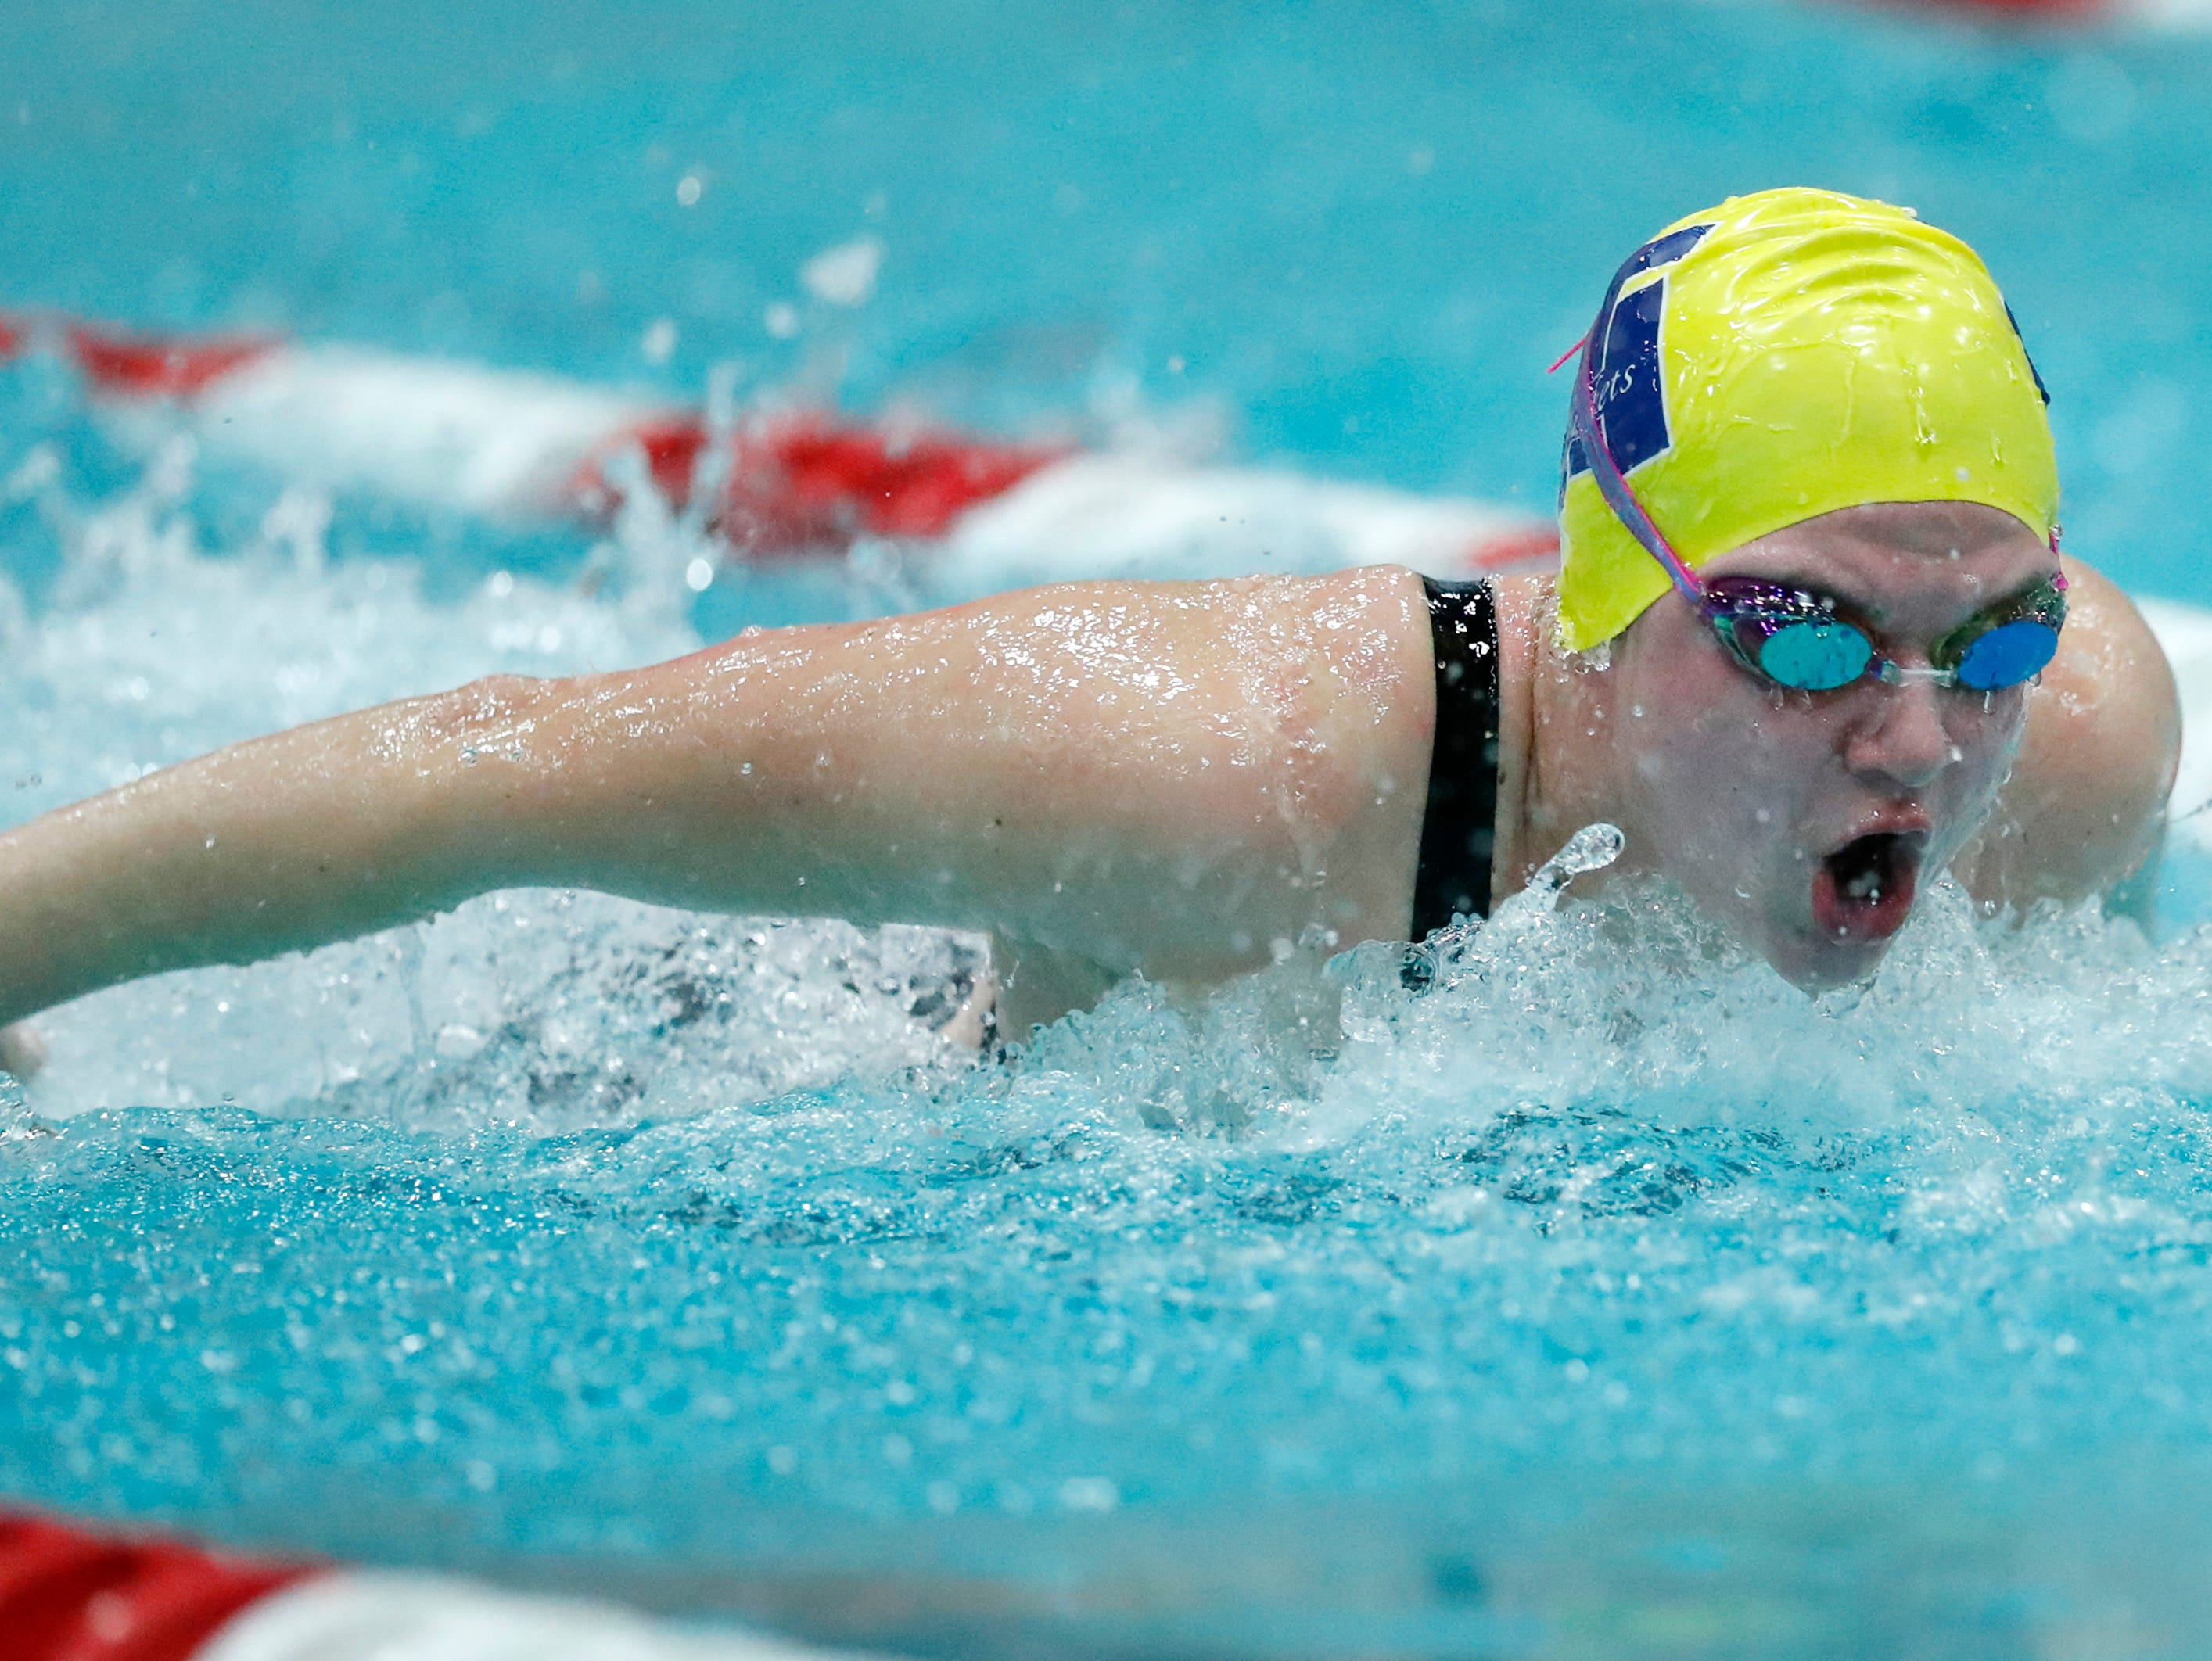 Tomahawk's Kaylie Svacina races in the 200 yard individual medley during the WIAA Division 2 State Swimming and Diving meet Friday, Nov. 9, 2018, at the UW Natatorium in Madison, Wis.Danny Damiani/USA TODAY NETWORK-Wisconsin